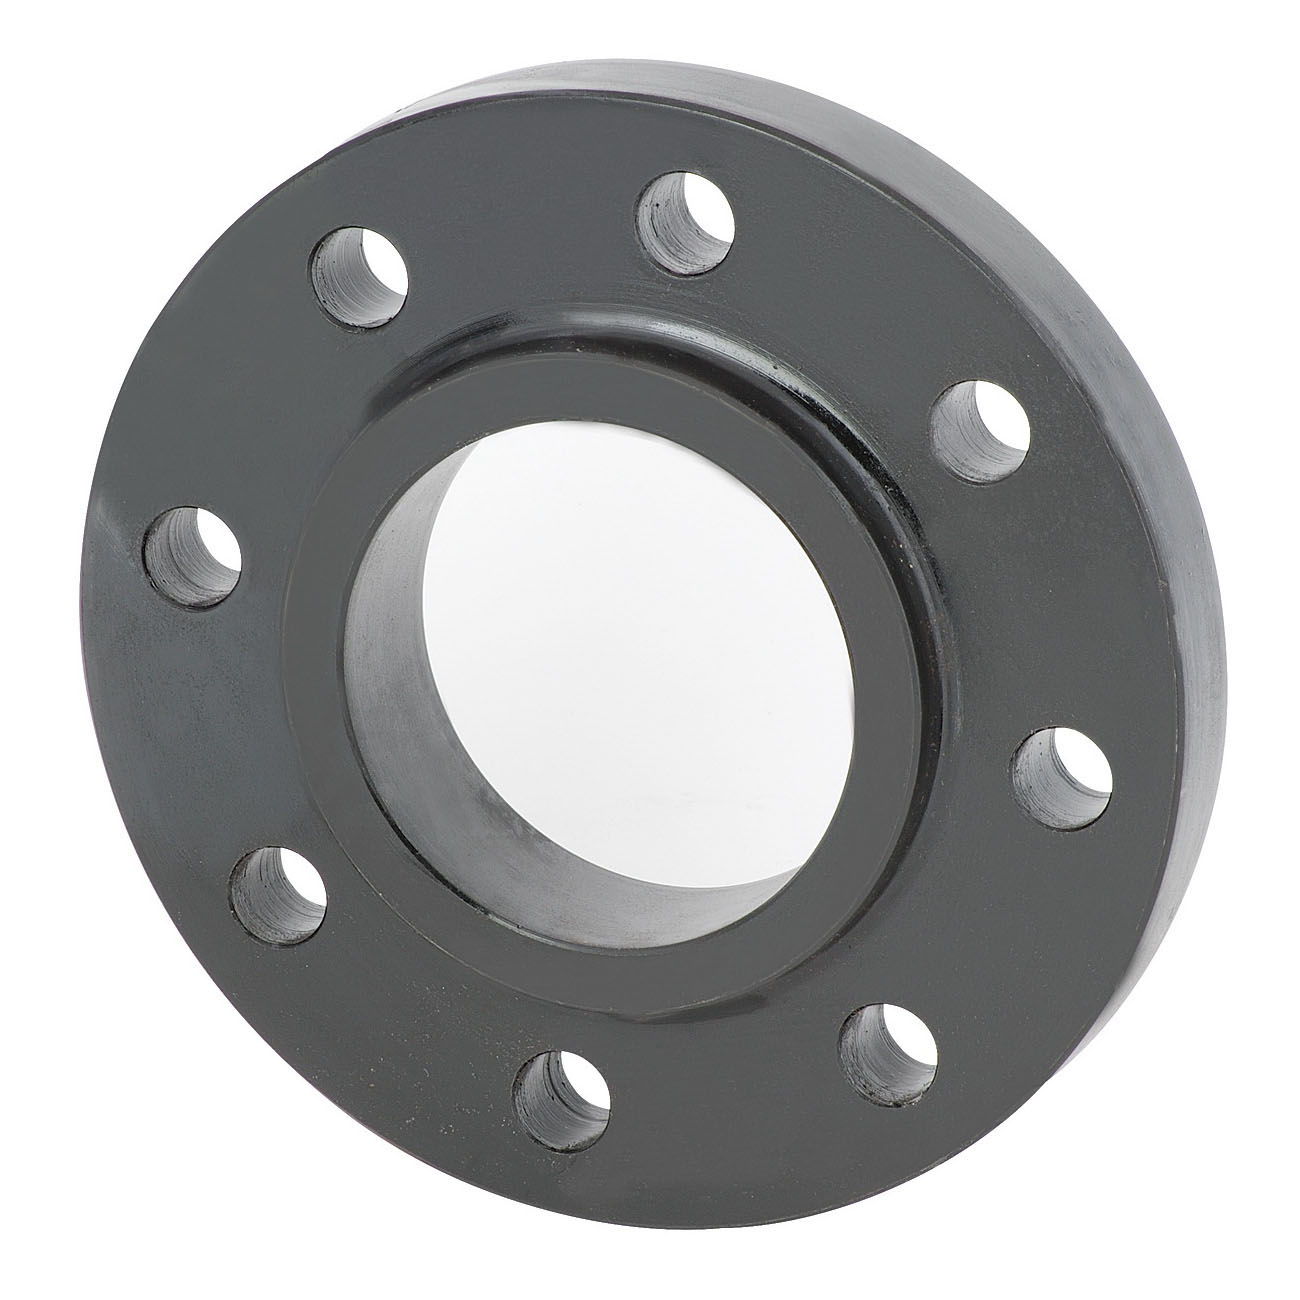 Matco-Norca™ MN300SF10 Raised Face Slip-On Flange, 3 in Nominal, Carbon Steel, 300 lb, Domestic